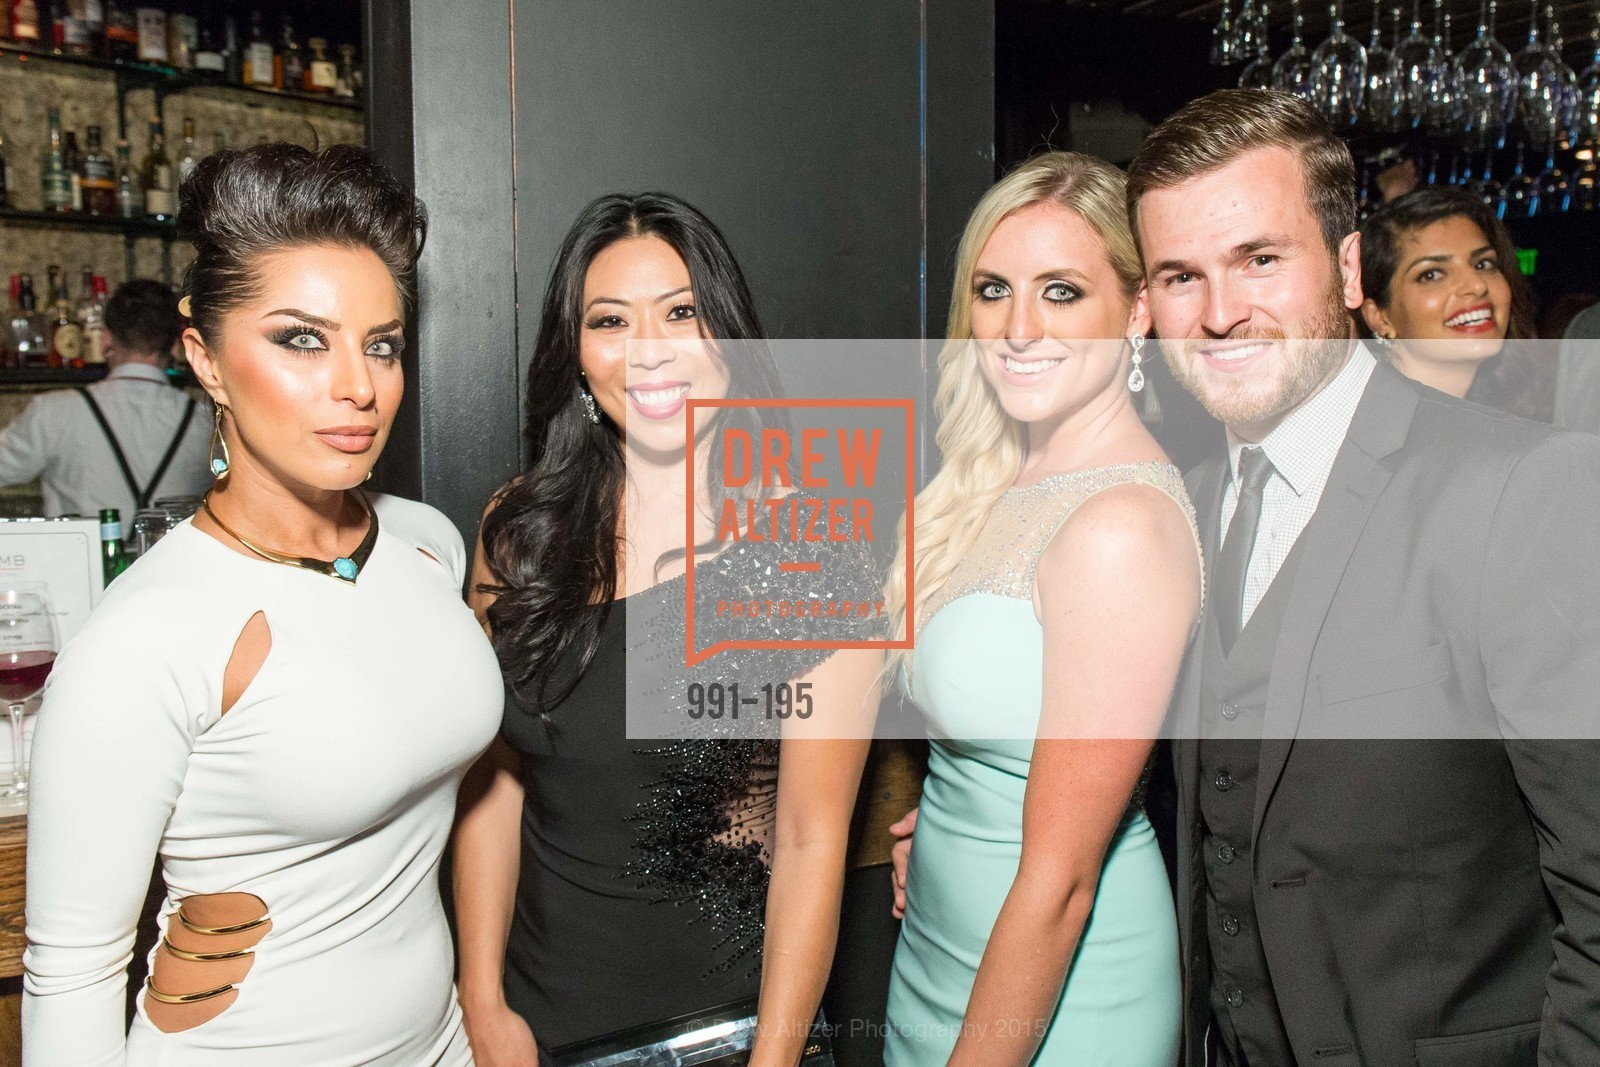 Molly Noor, Joyce Chiu, Stephanie Slye, Kenan Slye, Climb Real Estate and Sindeo Celebrate the Launch of Million Dollar Listing San Francisco, Local Edition San Francisco. 691 Market St, July 8th, 2015,Drew Altizer, Drew Altizer Photography, full-service agency, private events, San Francisco photographer, photographer california